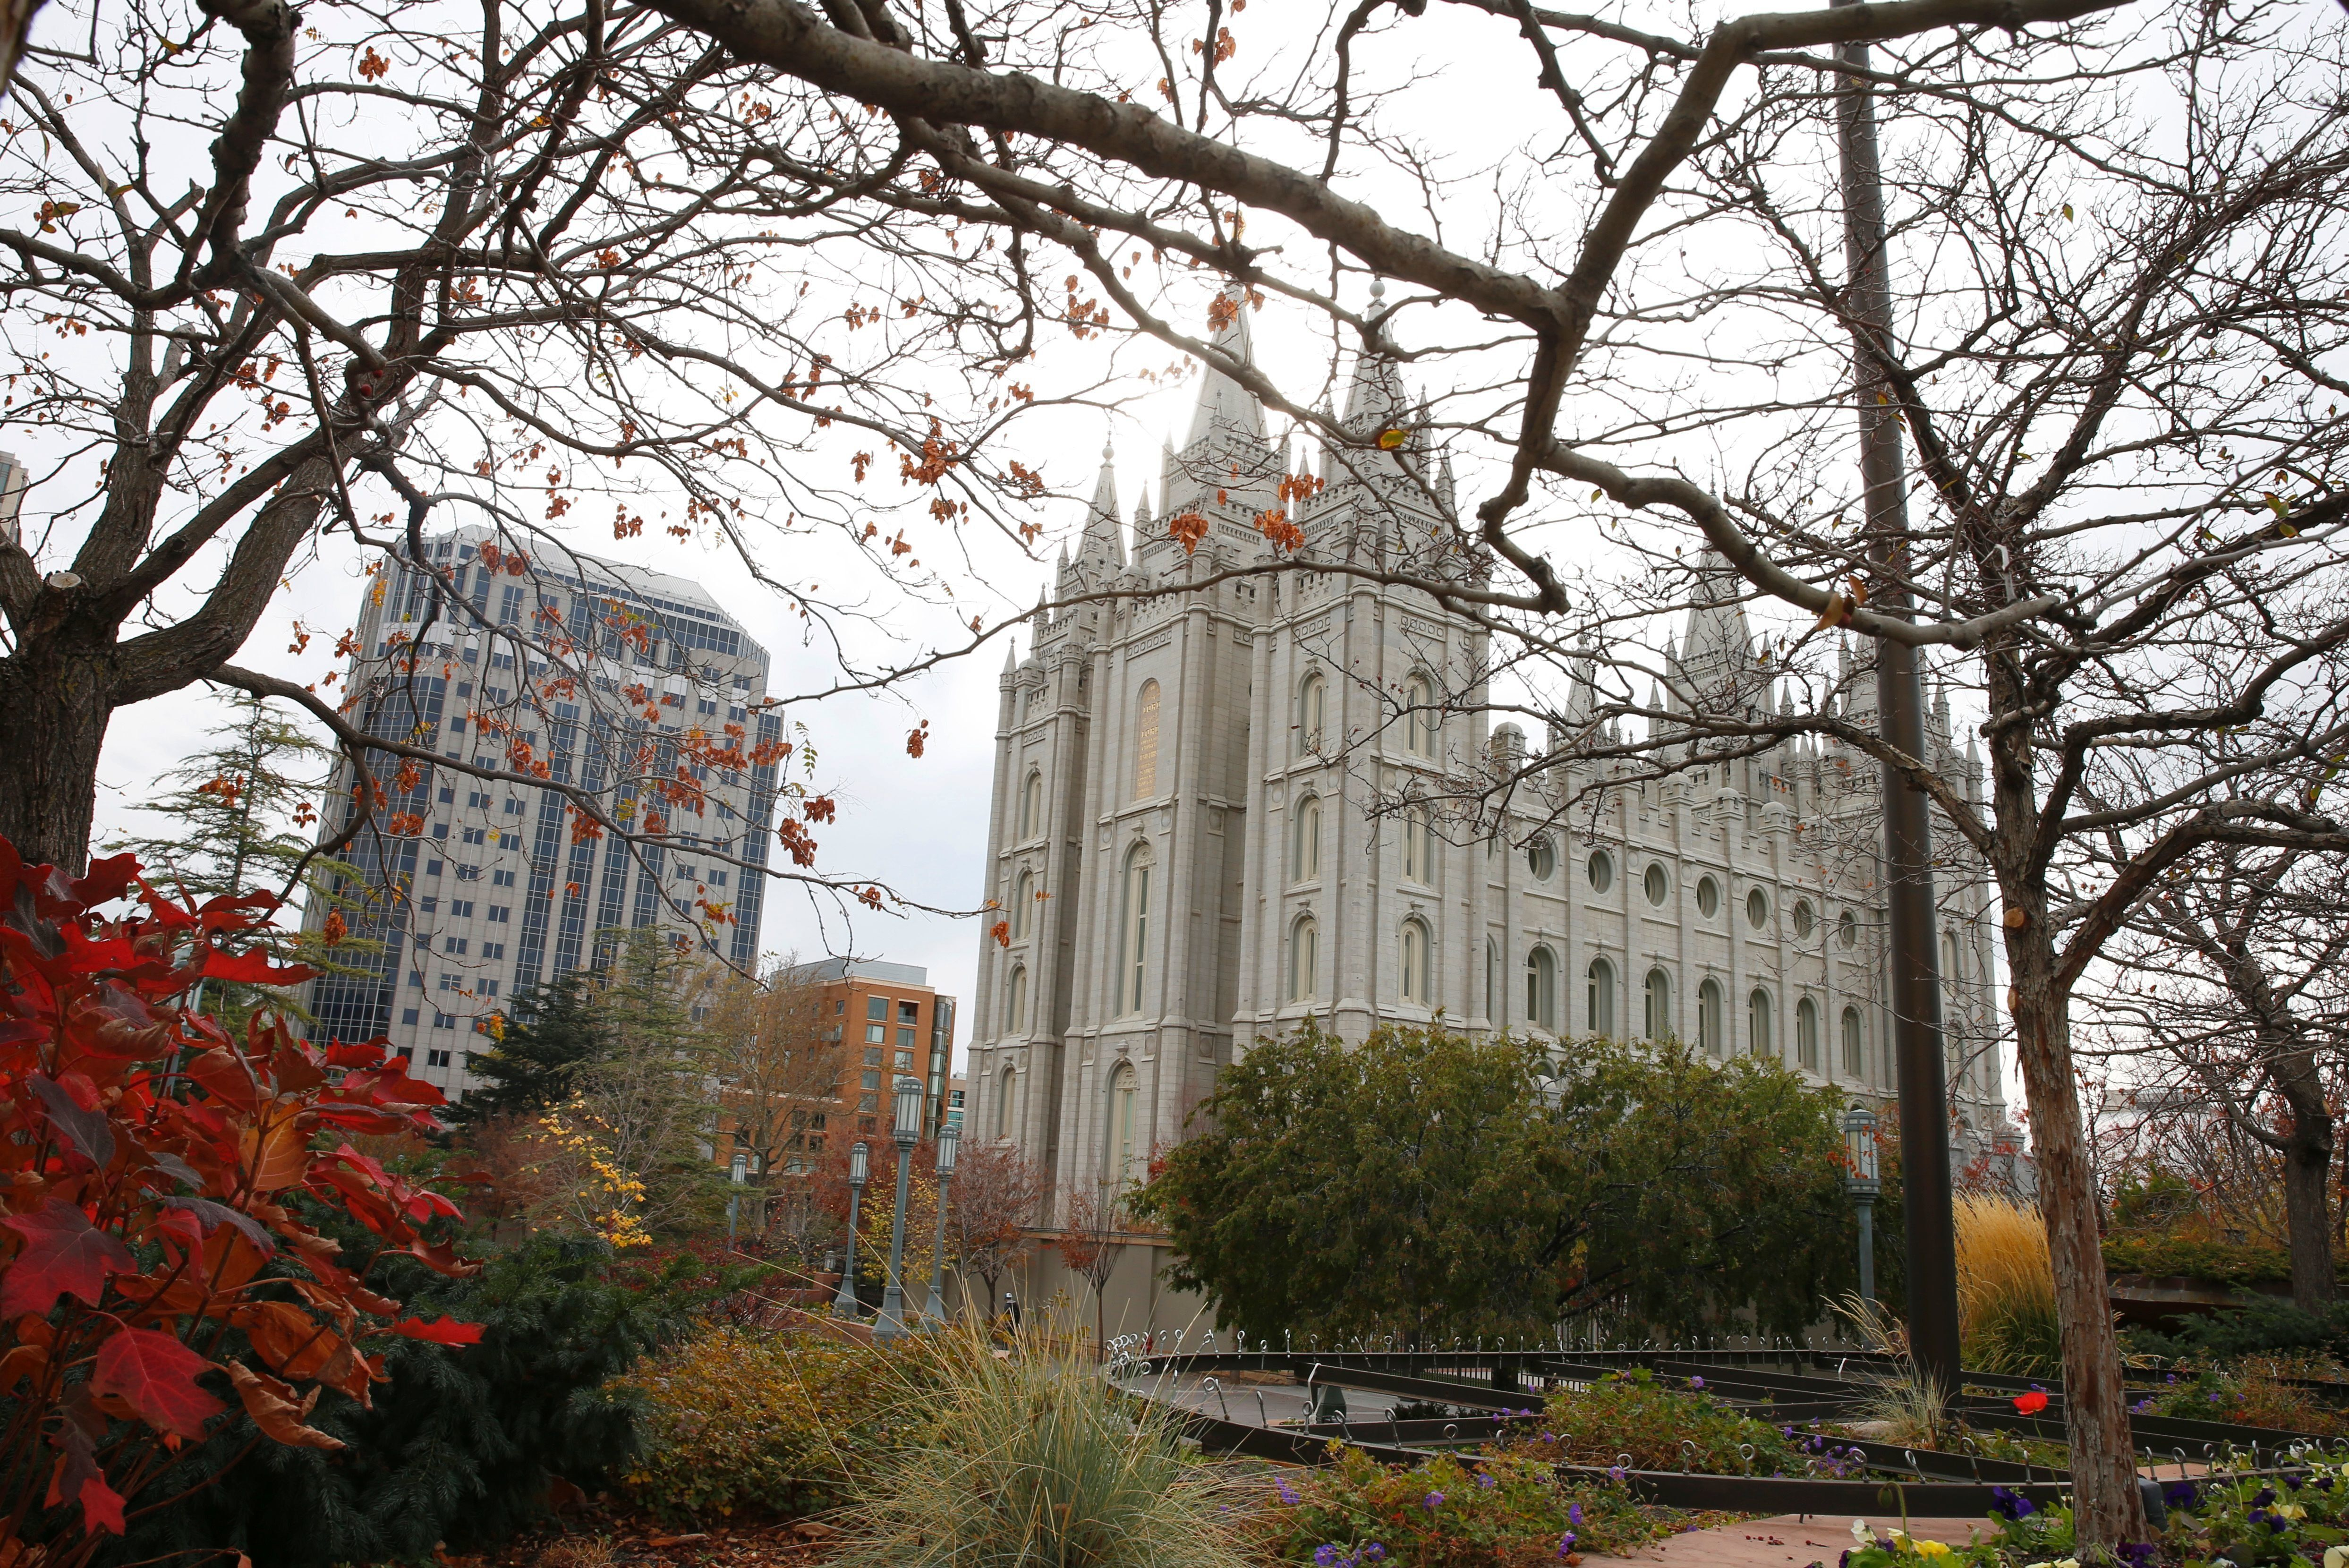 The historic Salt Lake Mormon Temple is shown here on Temple Square on November 1, 2016 in Salt Lake City, Utah. Polls show US Independent presidential candidate, Evan McMullin, in a tie with US Republican presidential candidate Donald Trump in the State of Utah. Mormons could play a deciding roll in McMullin's success. / AFP / GEORGE FREY        (Photo credit should read GEORGE FREY/AFP/Getty Images)